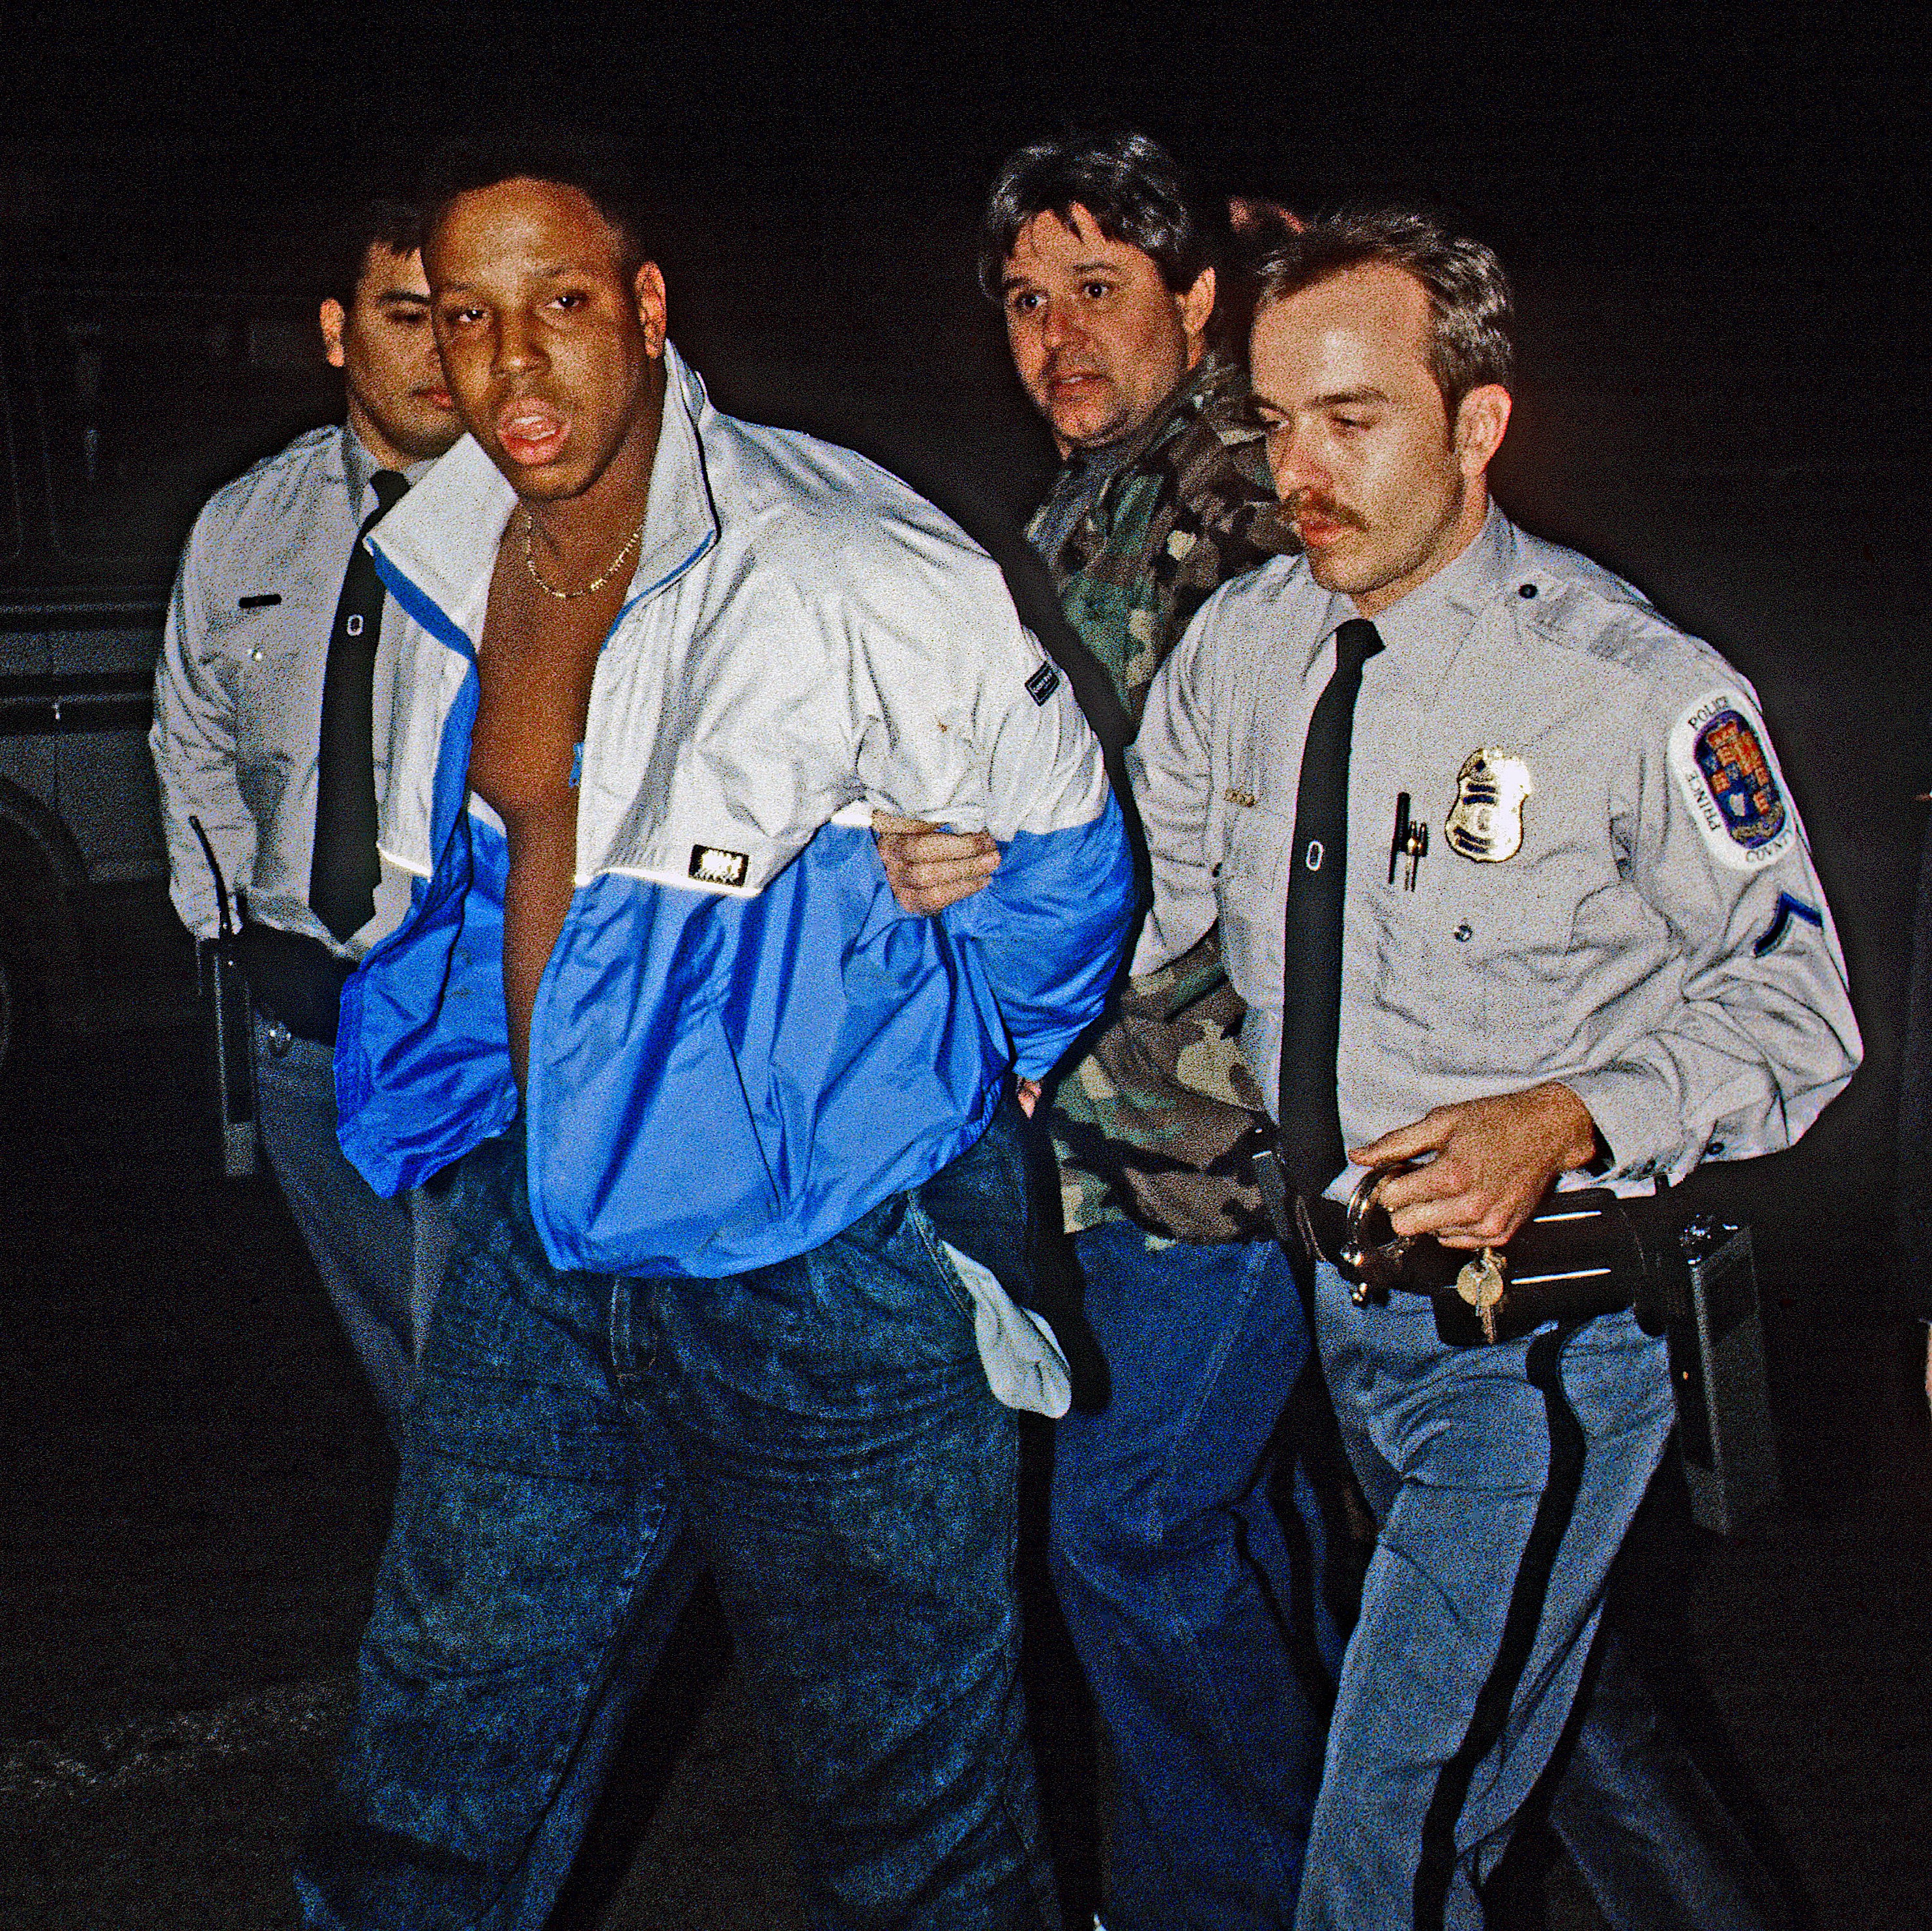 A young African American male being arrested by three white police officers in the 1980s